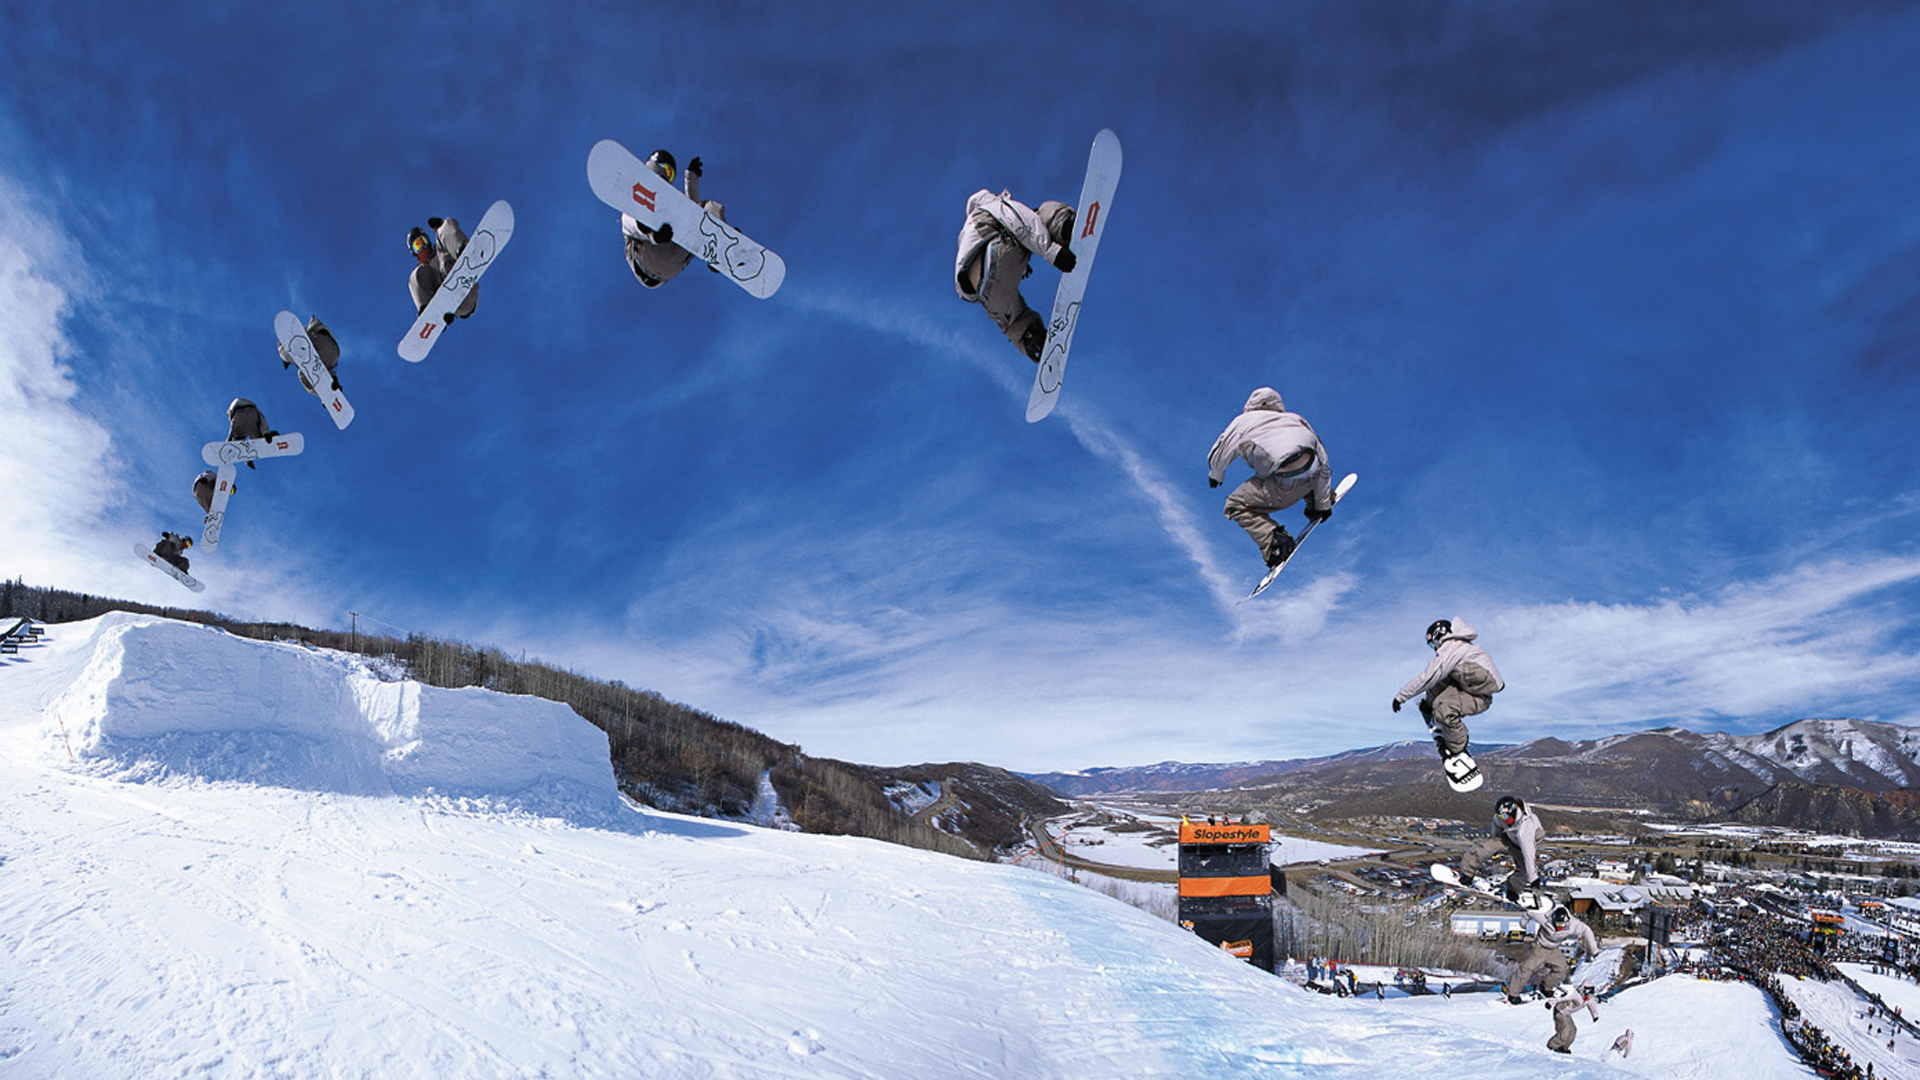 Sports - Snowboarding  Wallpaper